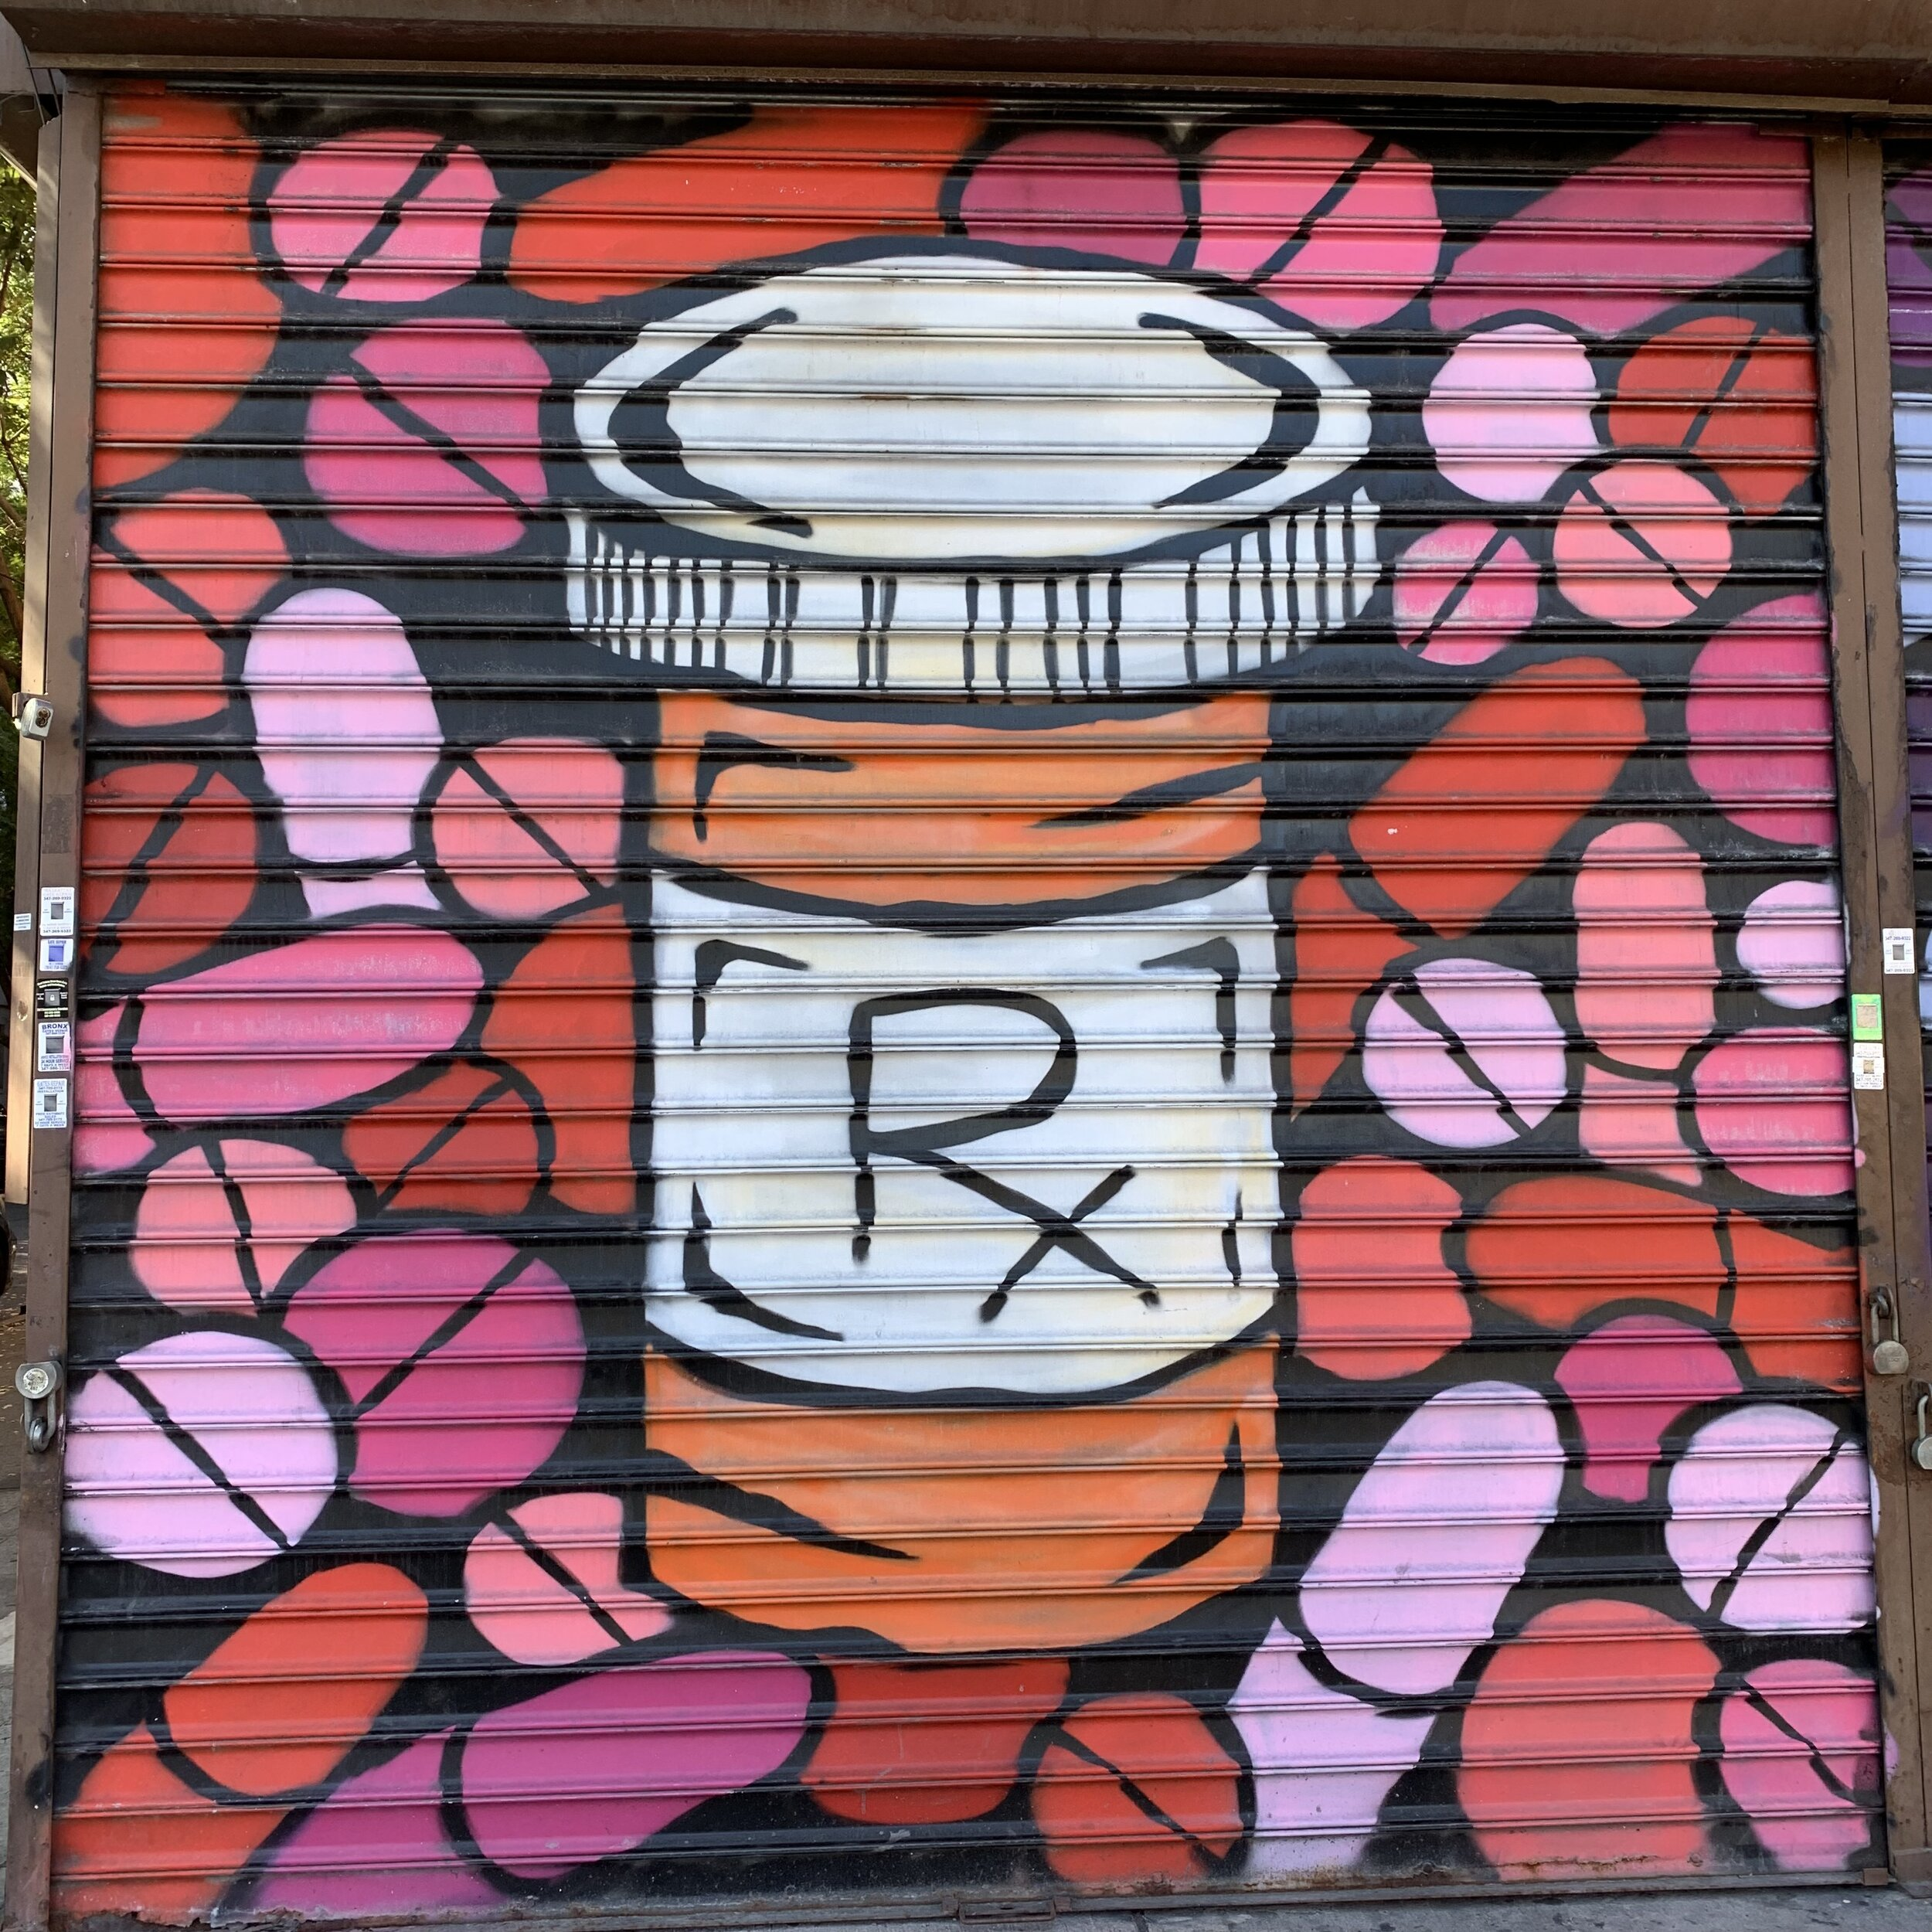 A mural on the side of a pharmacy in Harlem. Street art has my heart.